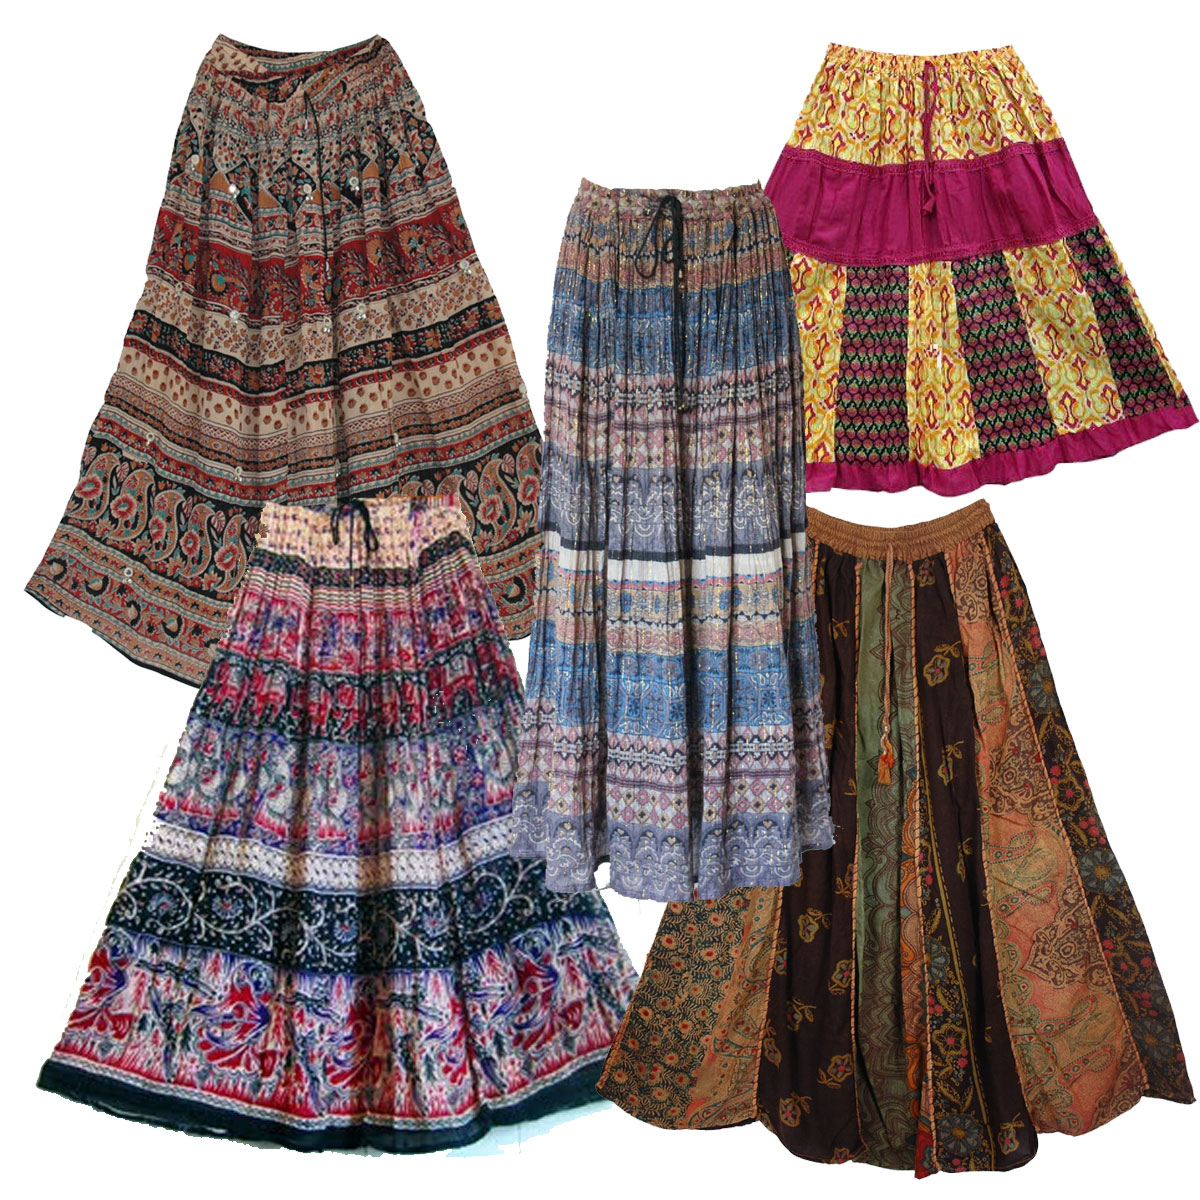 Vintage Ethnic Hippy Skirts Wholesale Clothing | : Dust ...